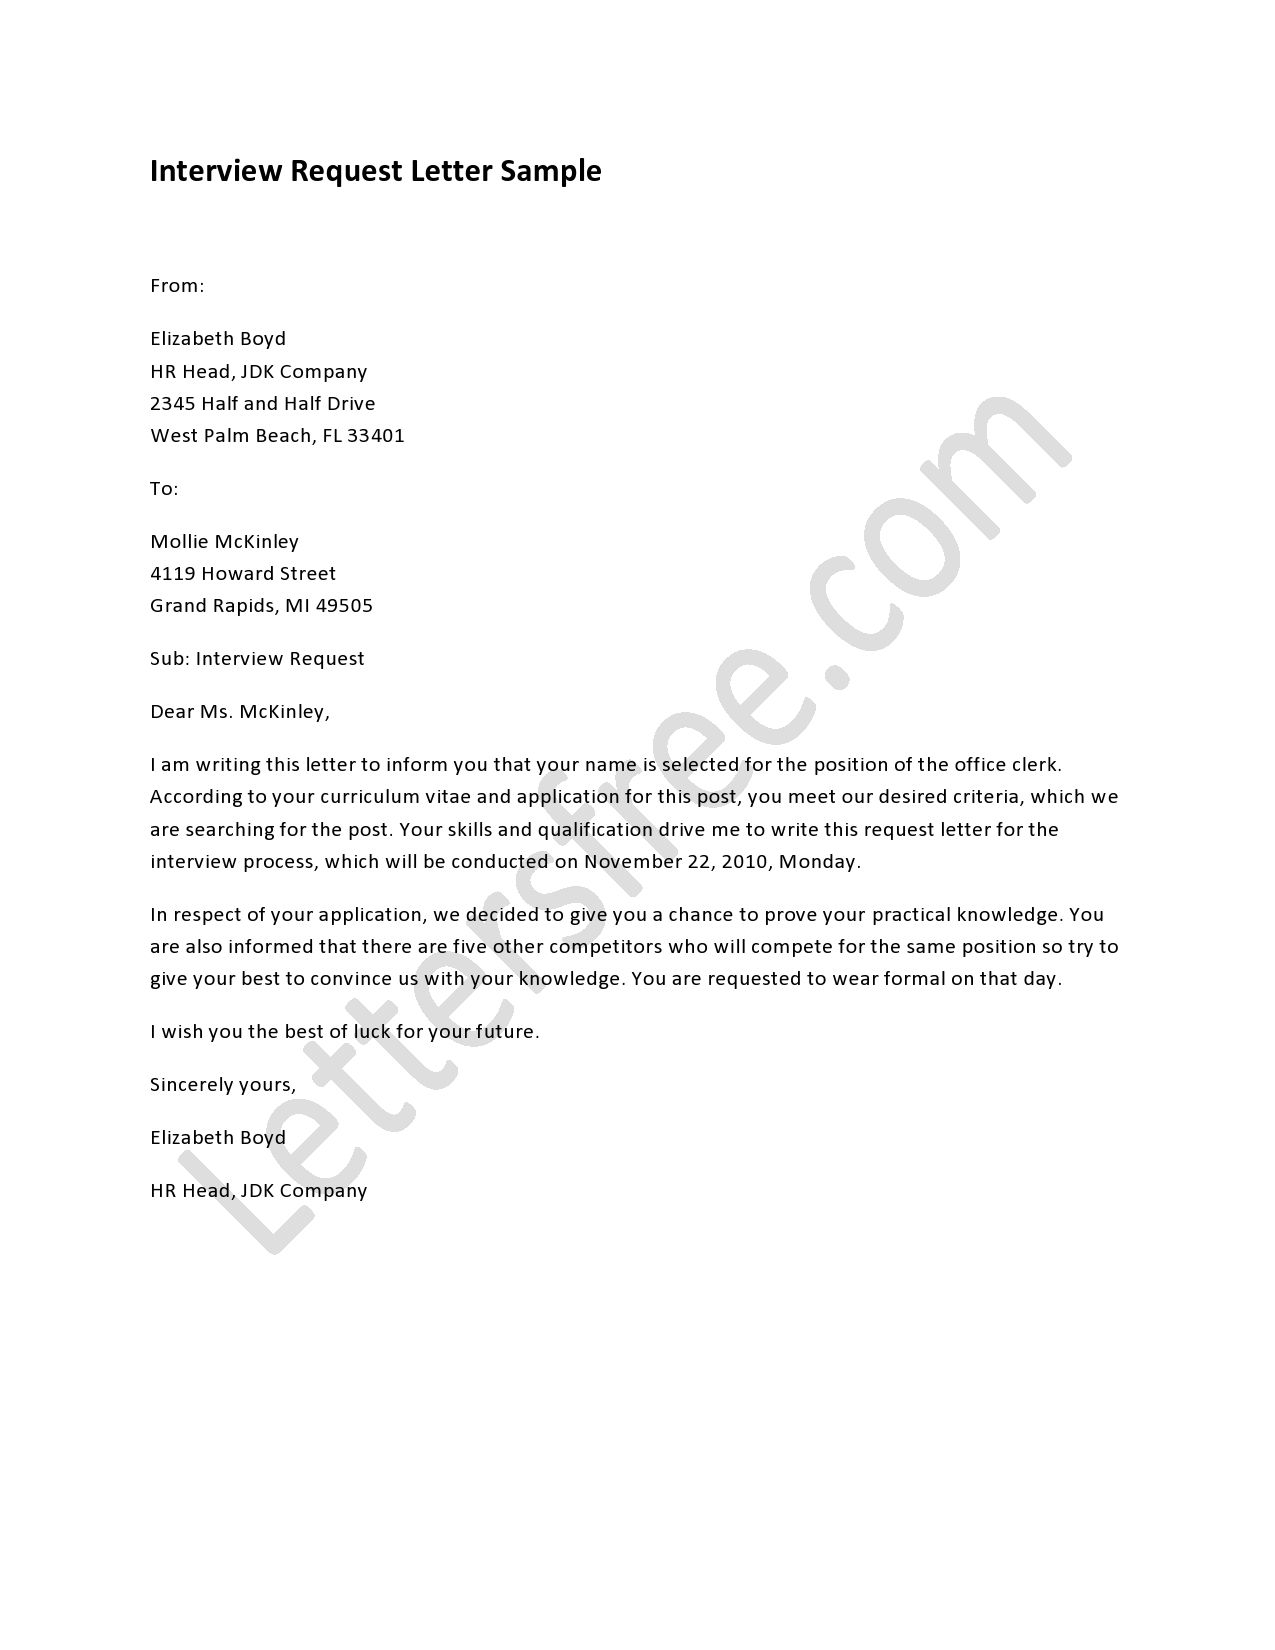 tips for writing interview request letter resume templates tips for writing interview request letter resume templates sample interview letter job interview